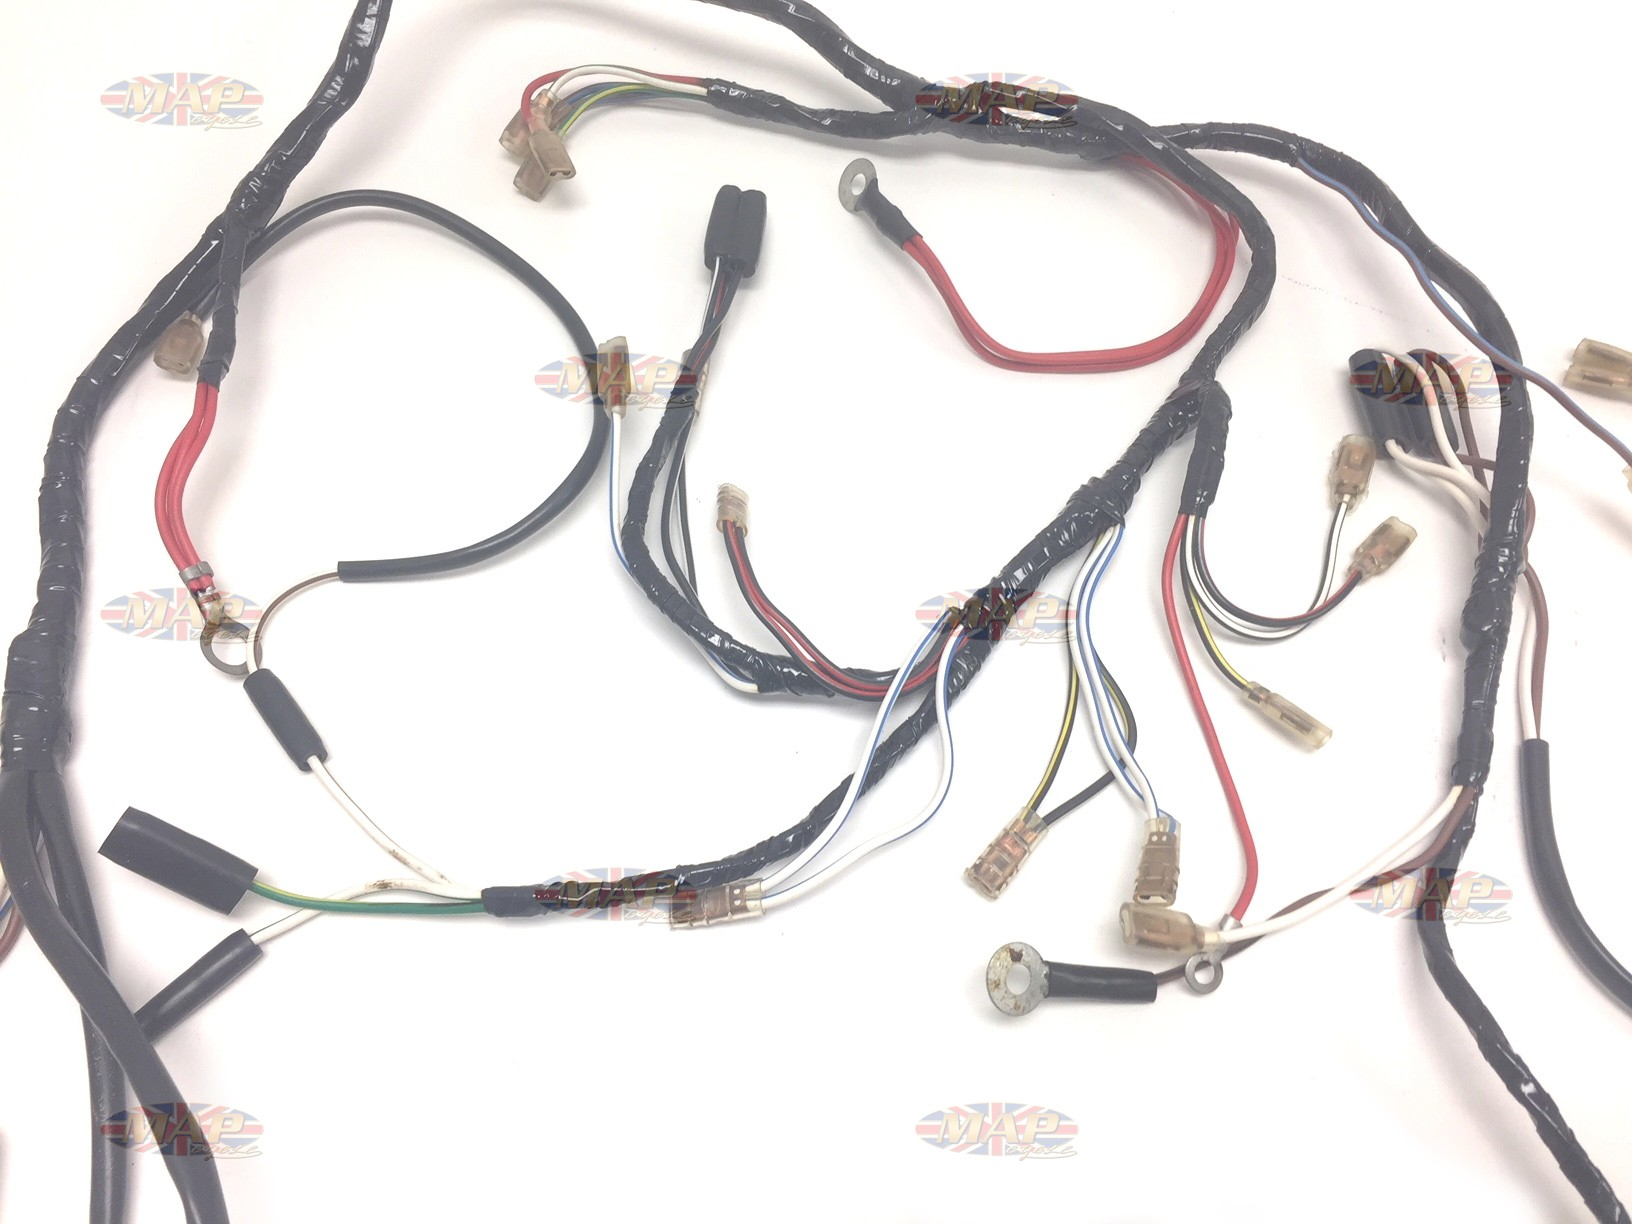 hurricane wiring harness wiring diagrams best triumph x75 hurricane lucas oe wiring harness wiring harness kit hurricane wiring harness